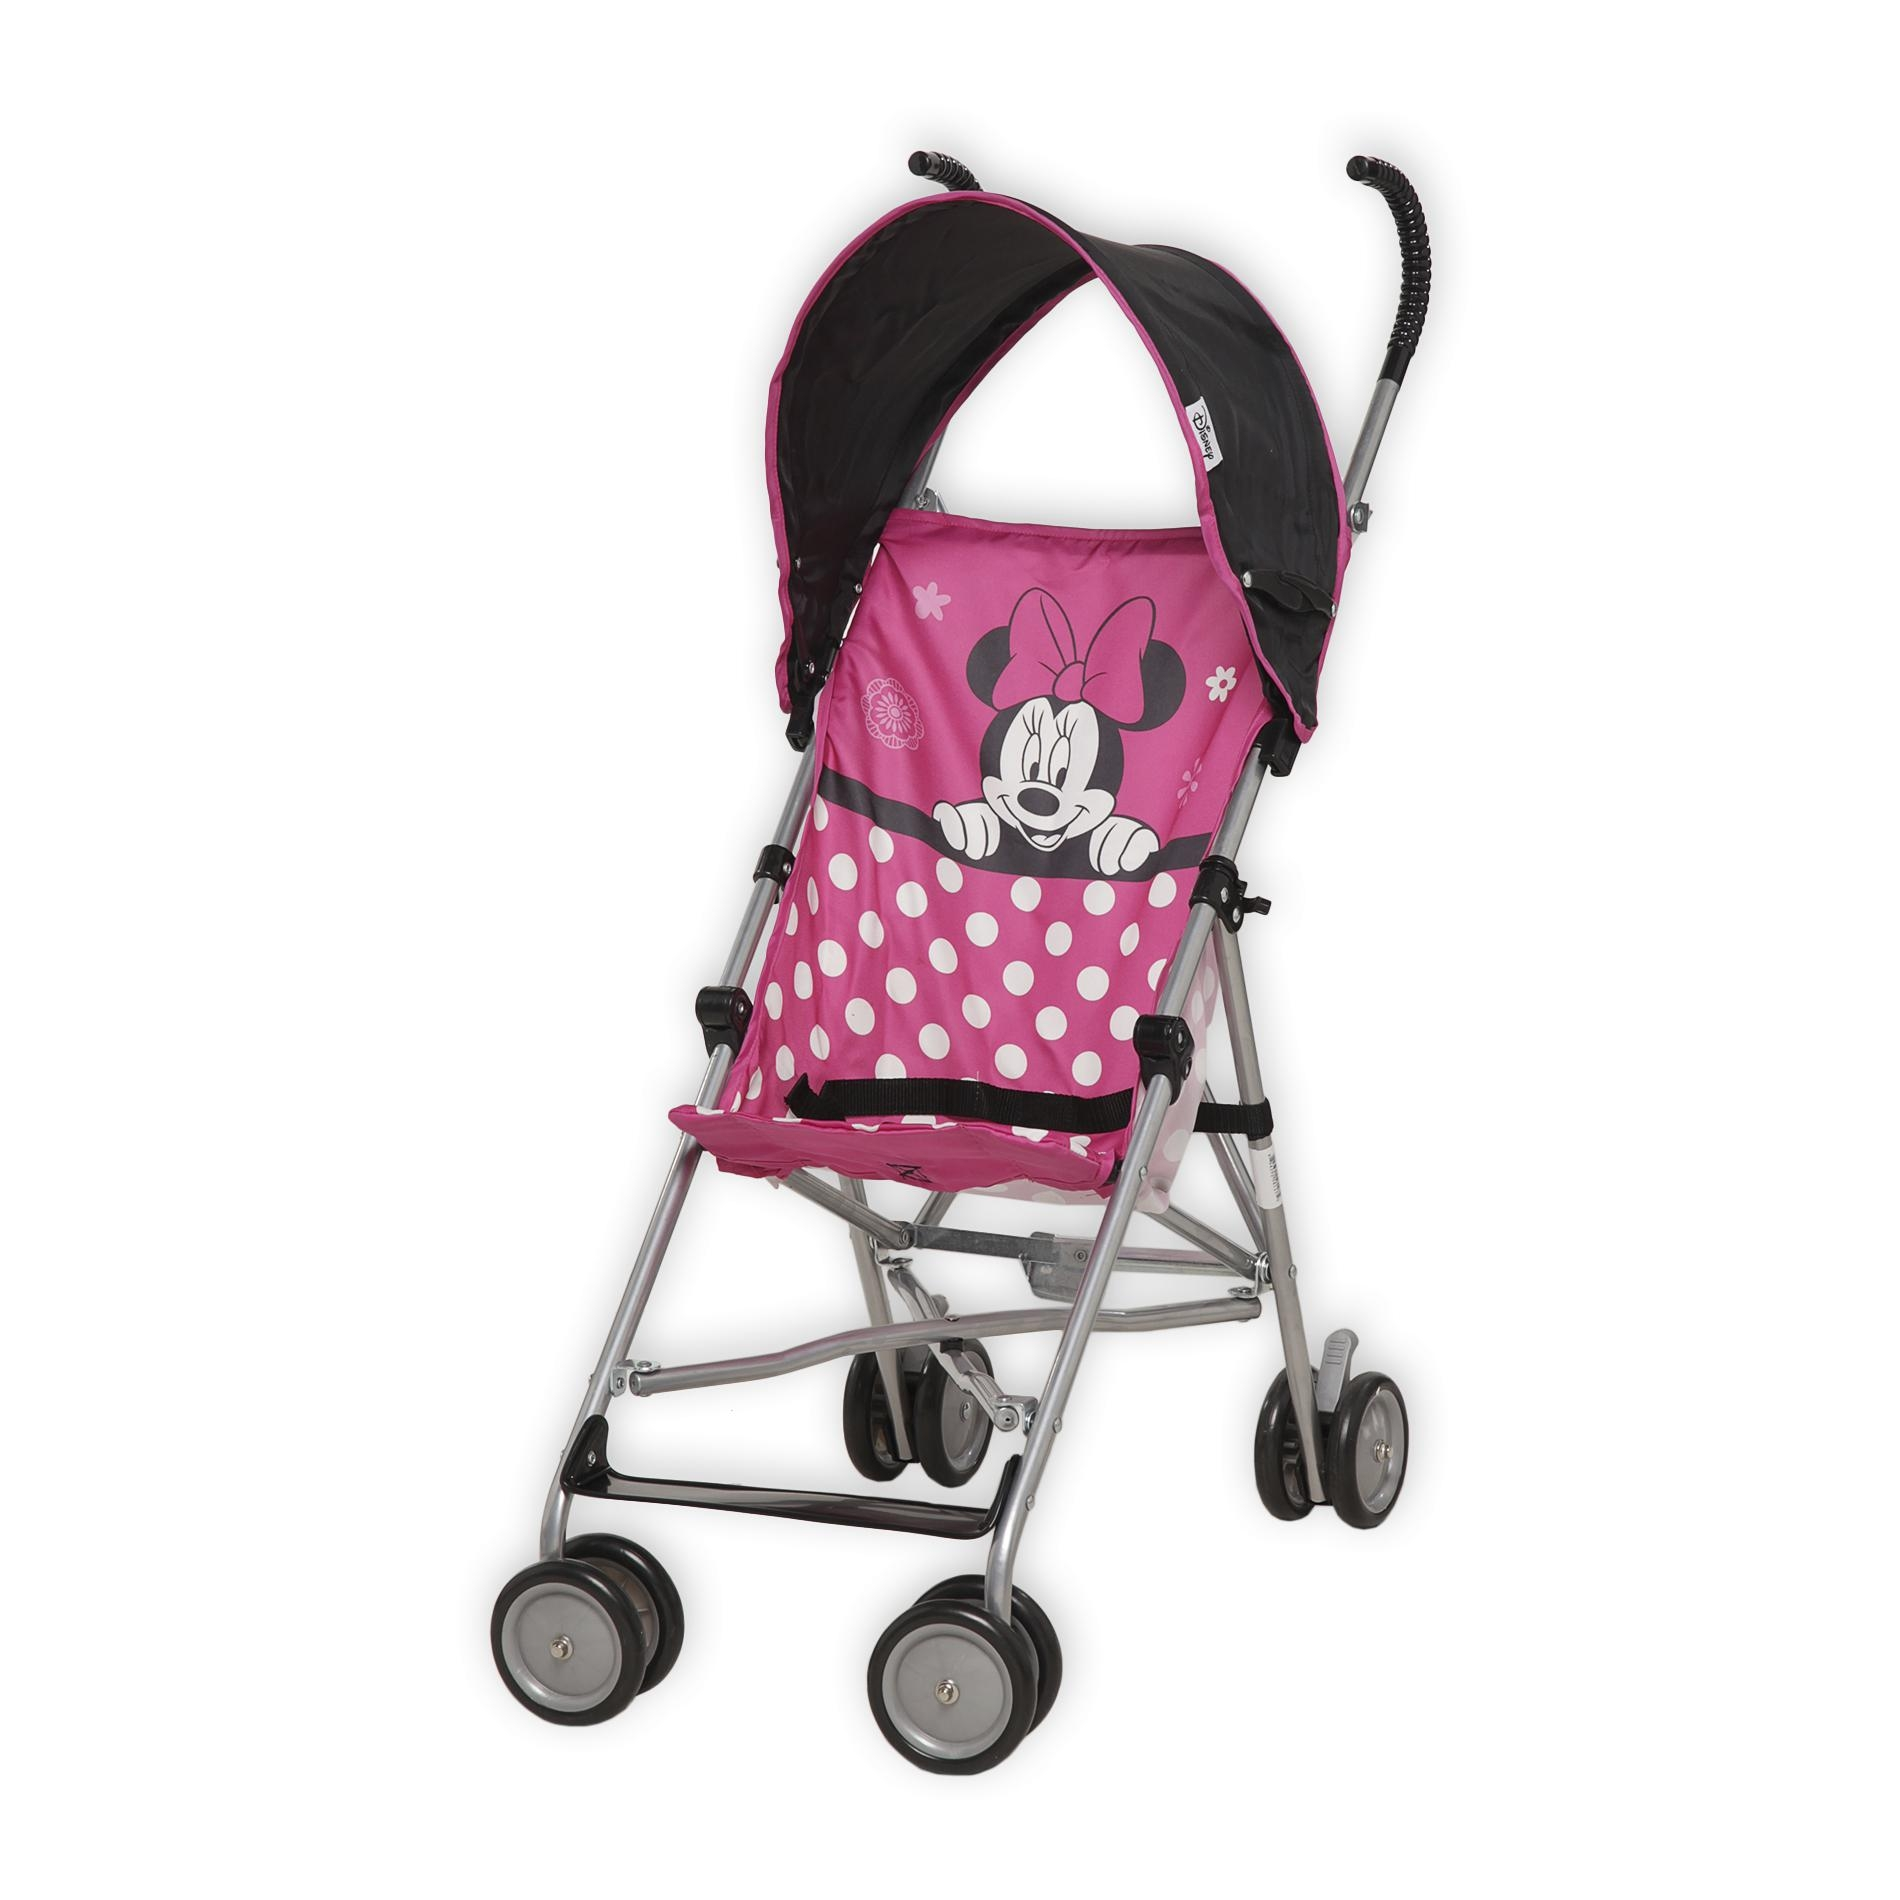 Minnie Mouse Infant Car Seat And Stroller Disney Umbrella Stroller Fly Away Minnie Shop Your Way